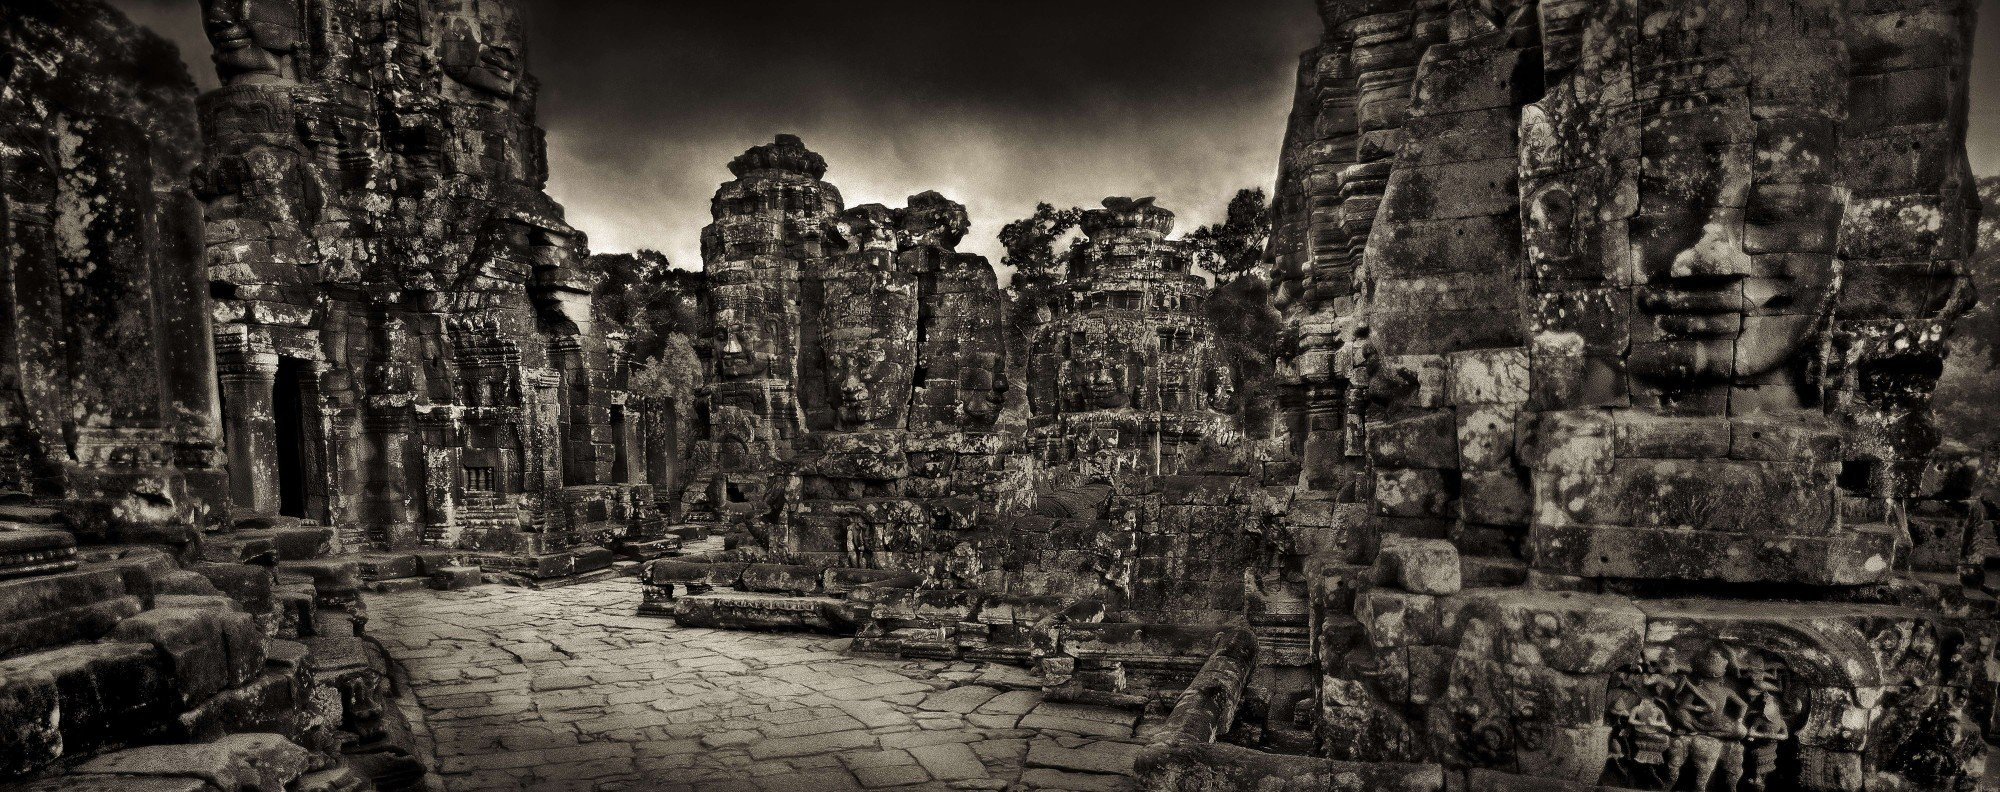 The Bayon Terrace. Photo: John W. McDermott